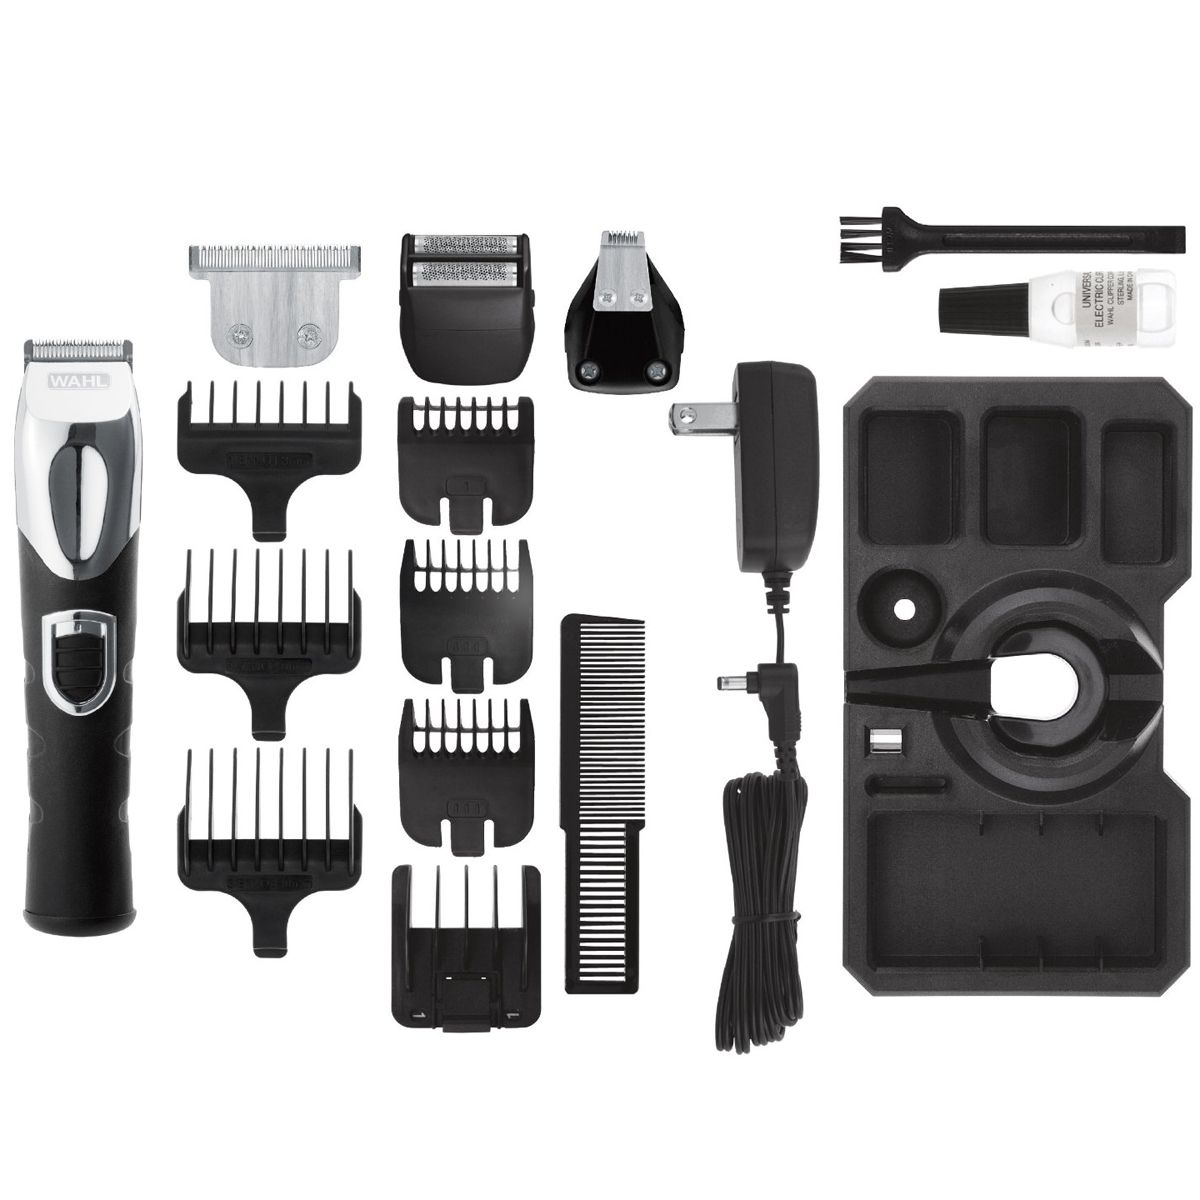 Wahl 3266 Trimmer Kit All-in-One li-ion  0d3915b00585